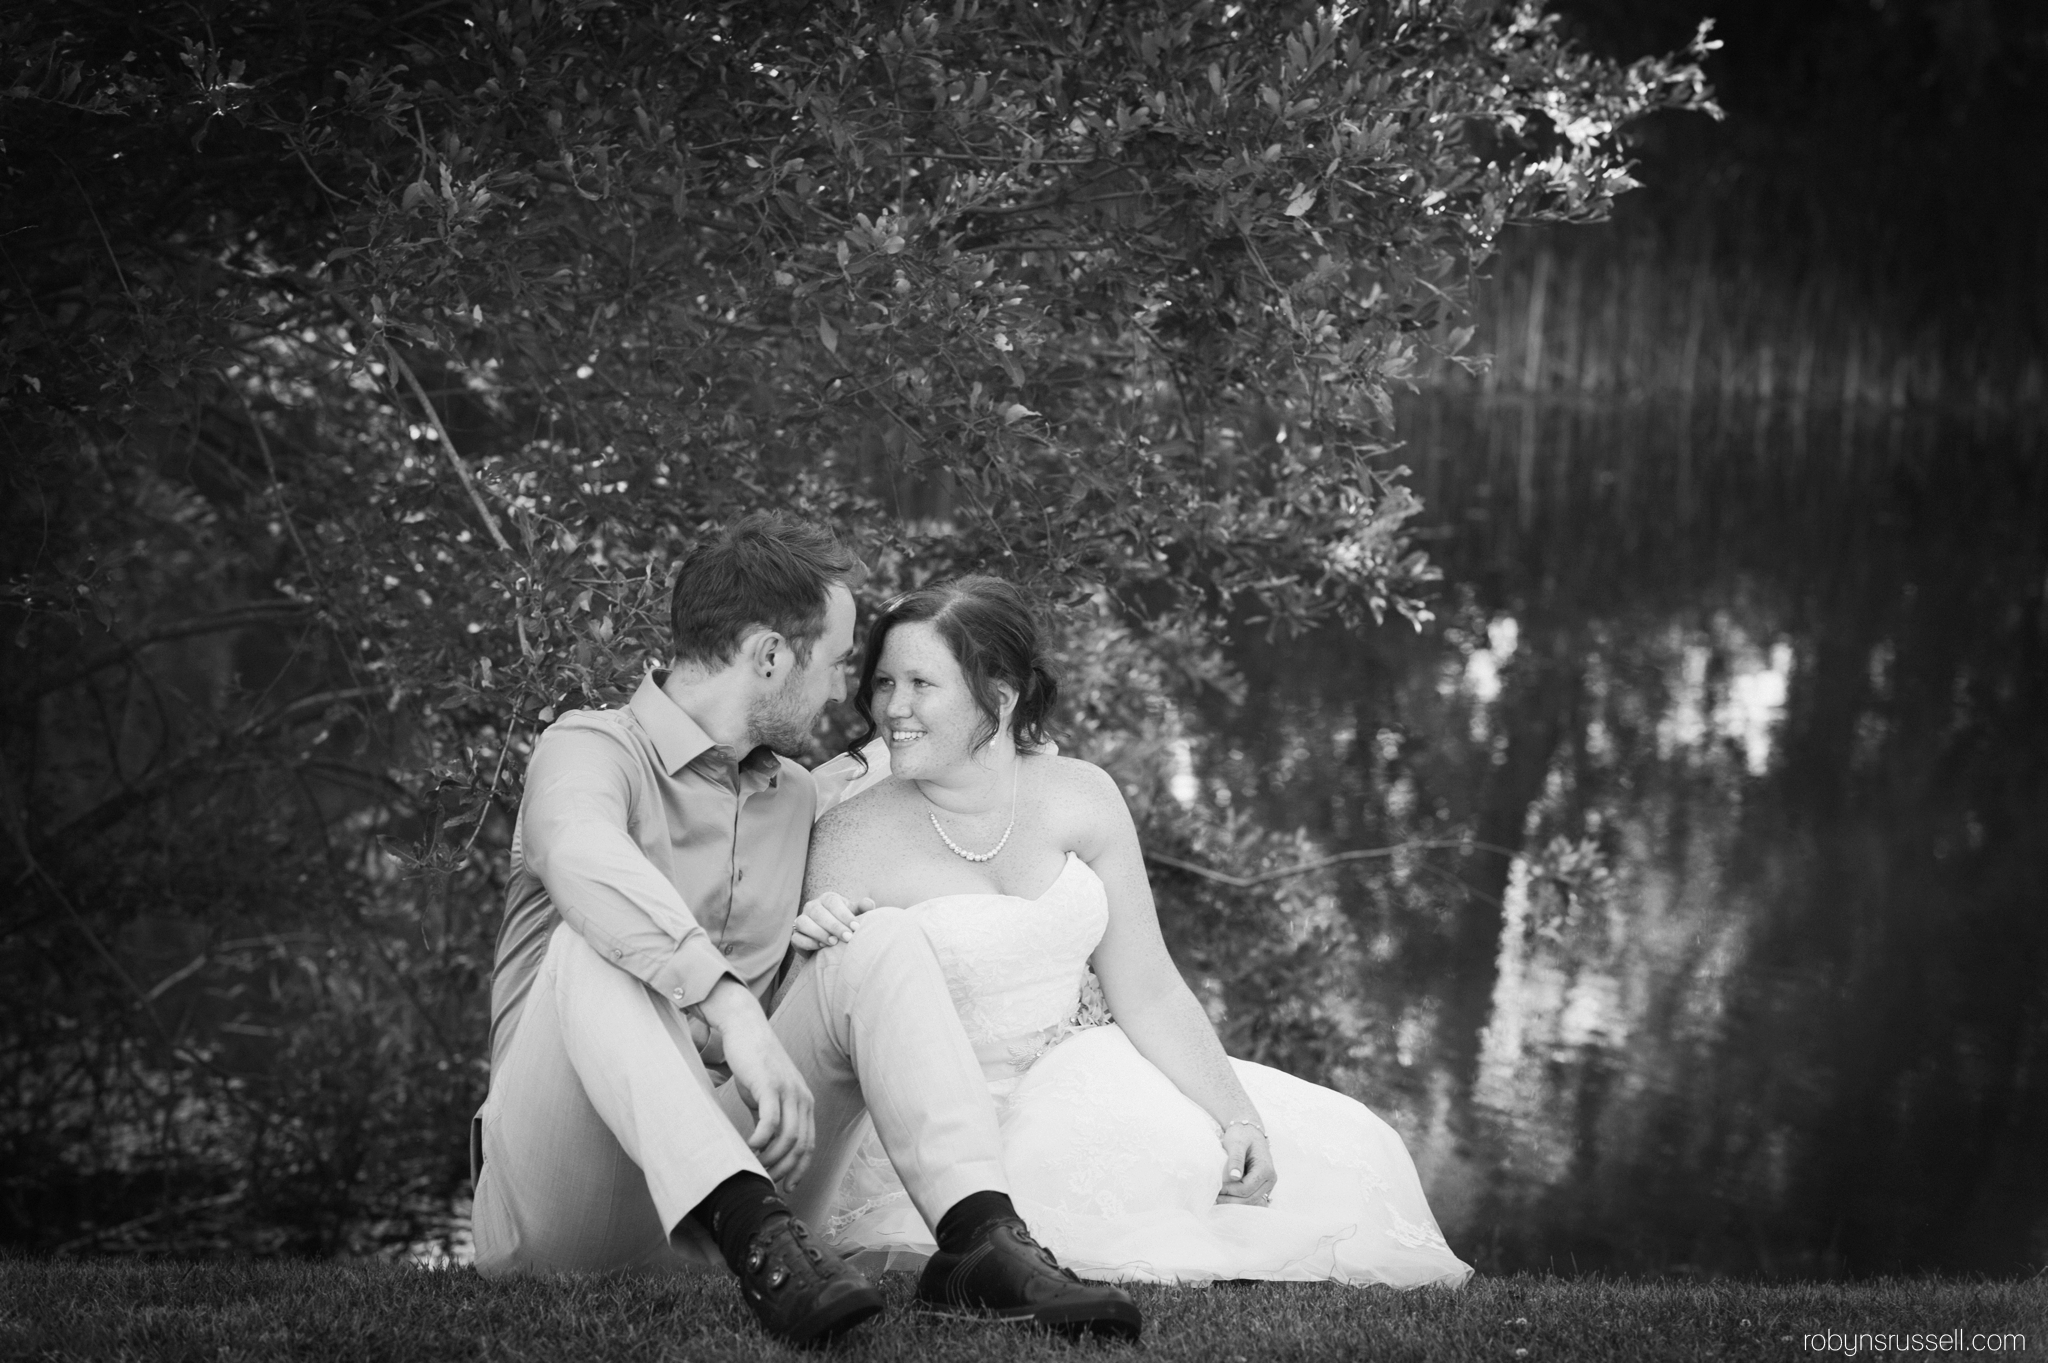 58-bride-and-groom-by-belwood-lake-at-sunset.jpg